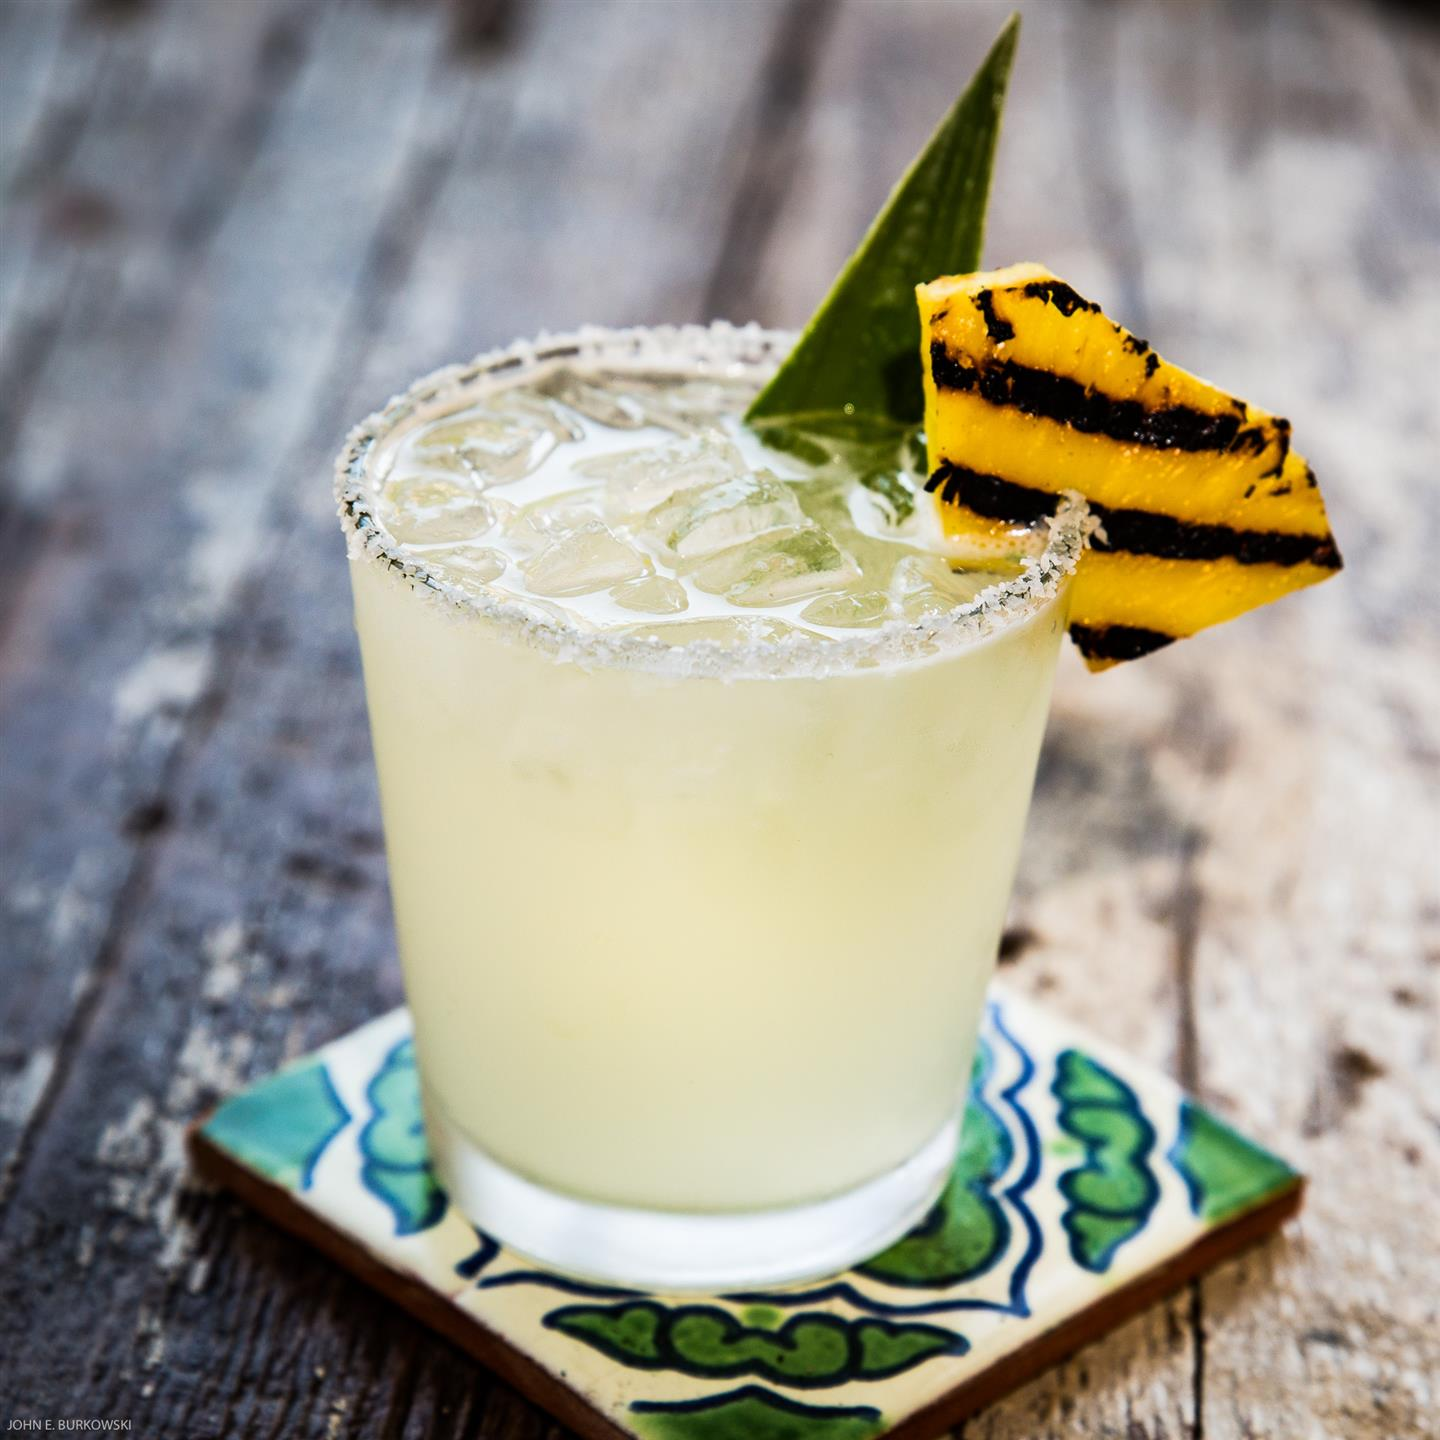 a margarita with a salted rim, grilled slice of pineapple and pineapple leaf as a garnish on a table